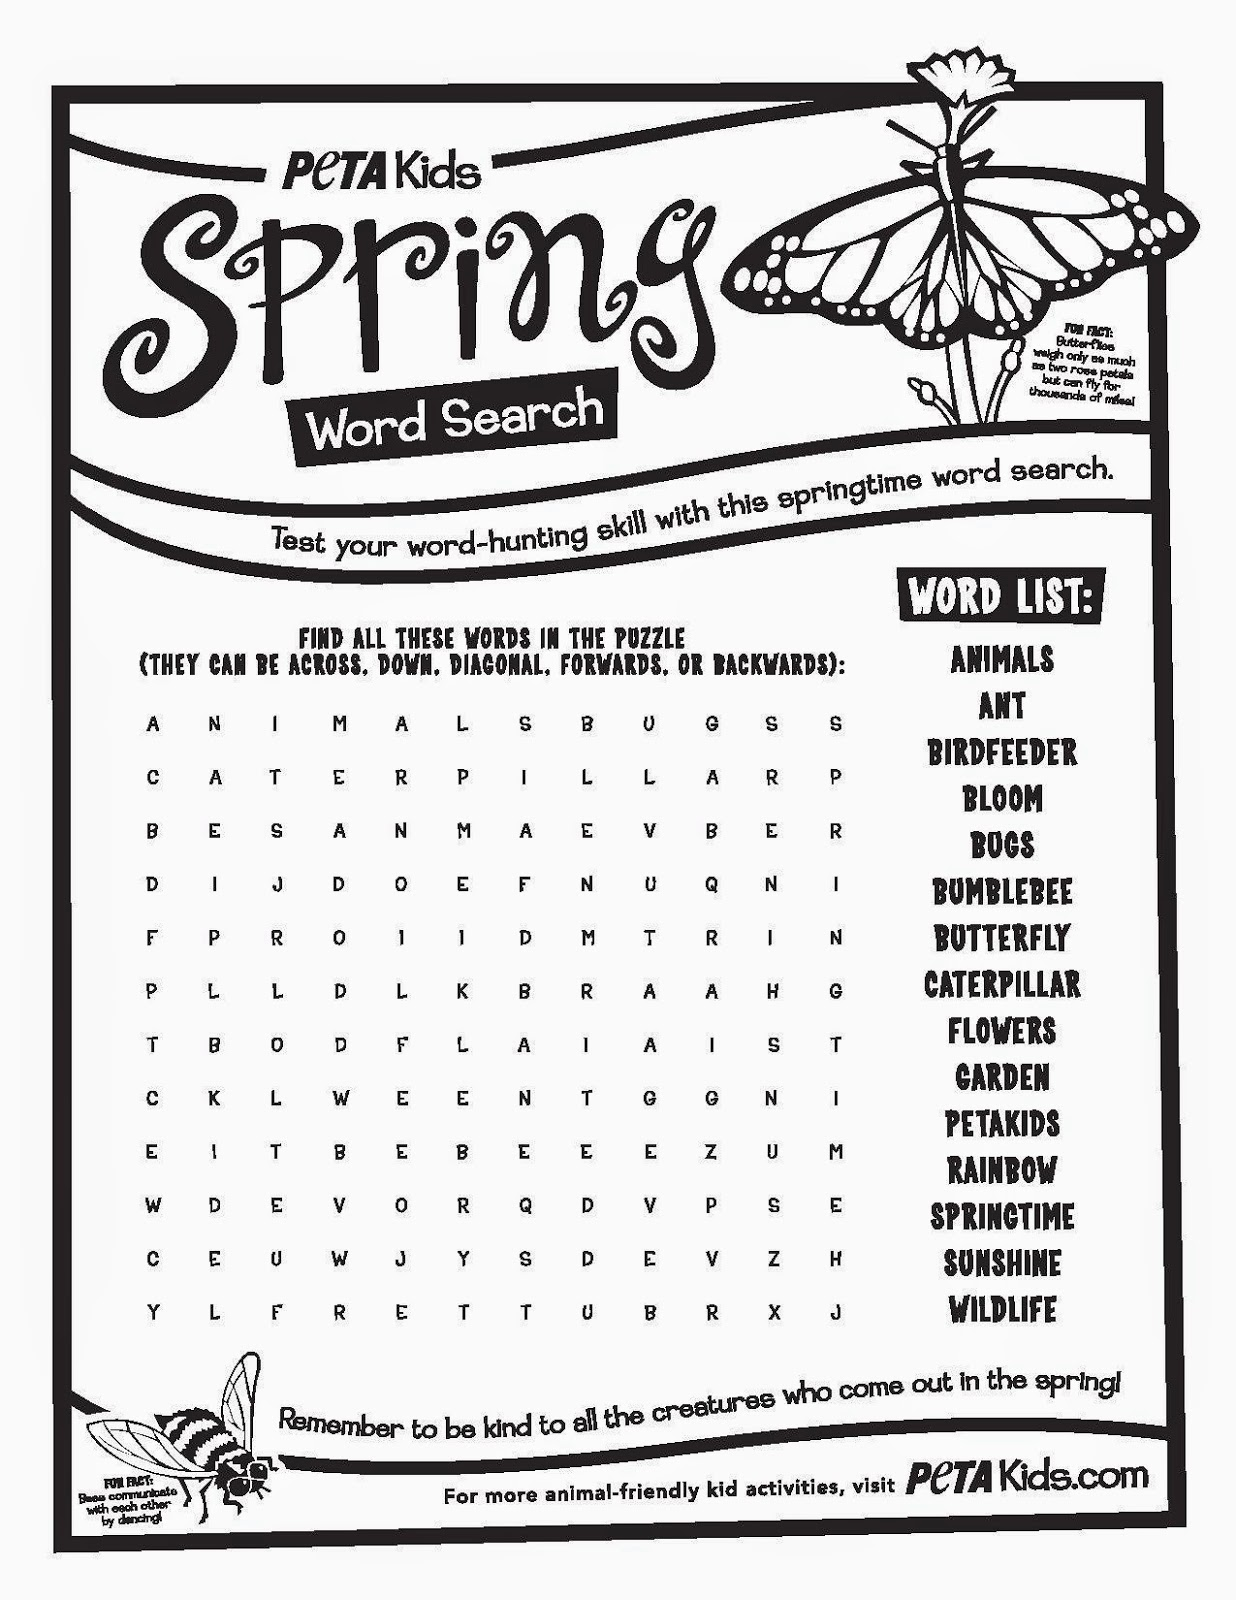 6 Images of Spring Word Search Printable